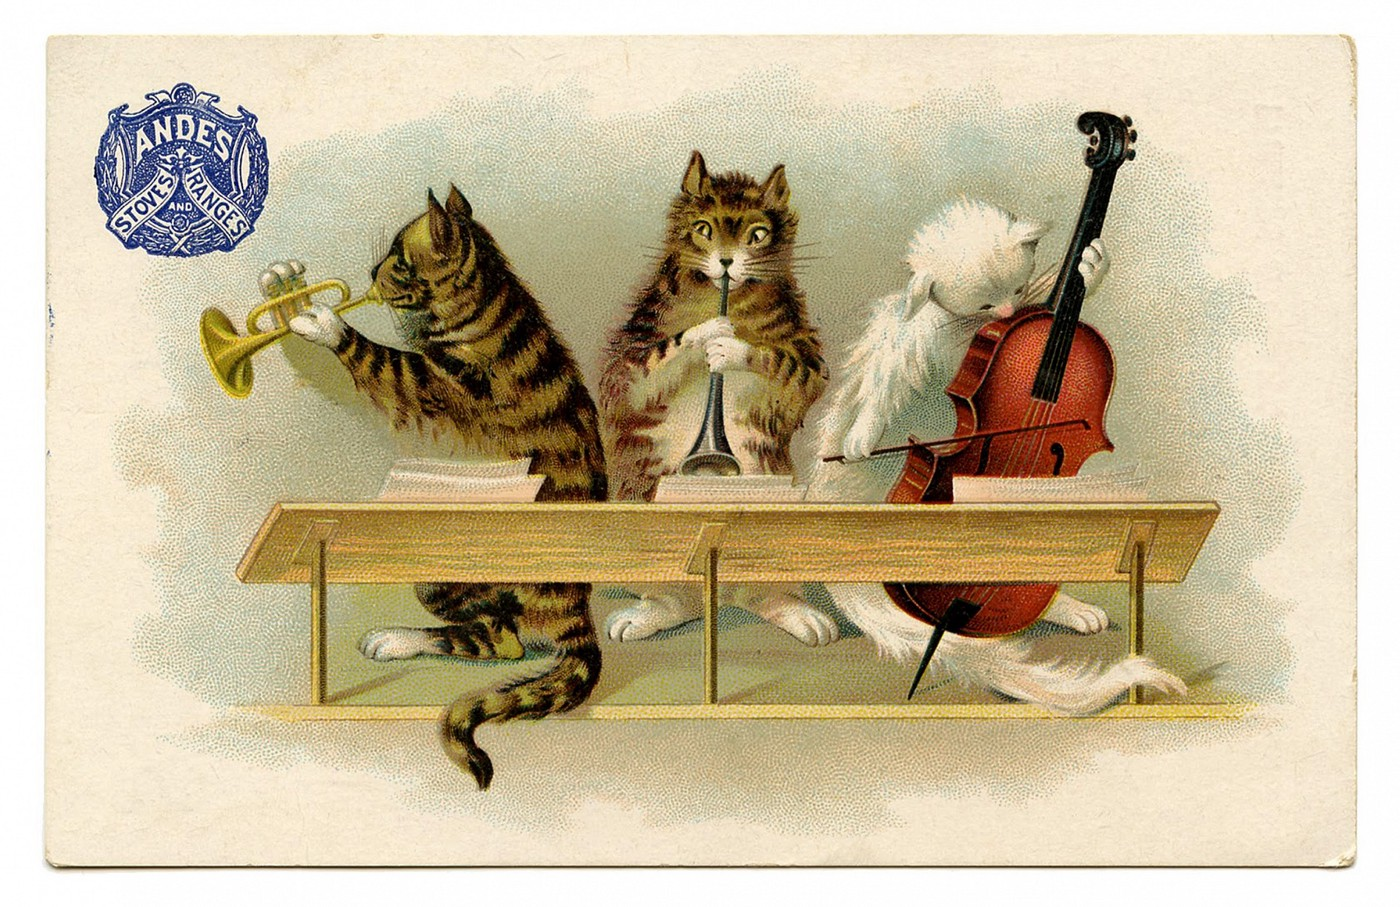 vintage illustration of cats playing musical instruments to sheet music